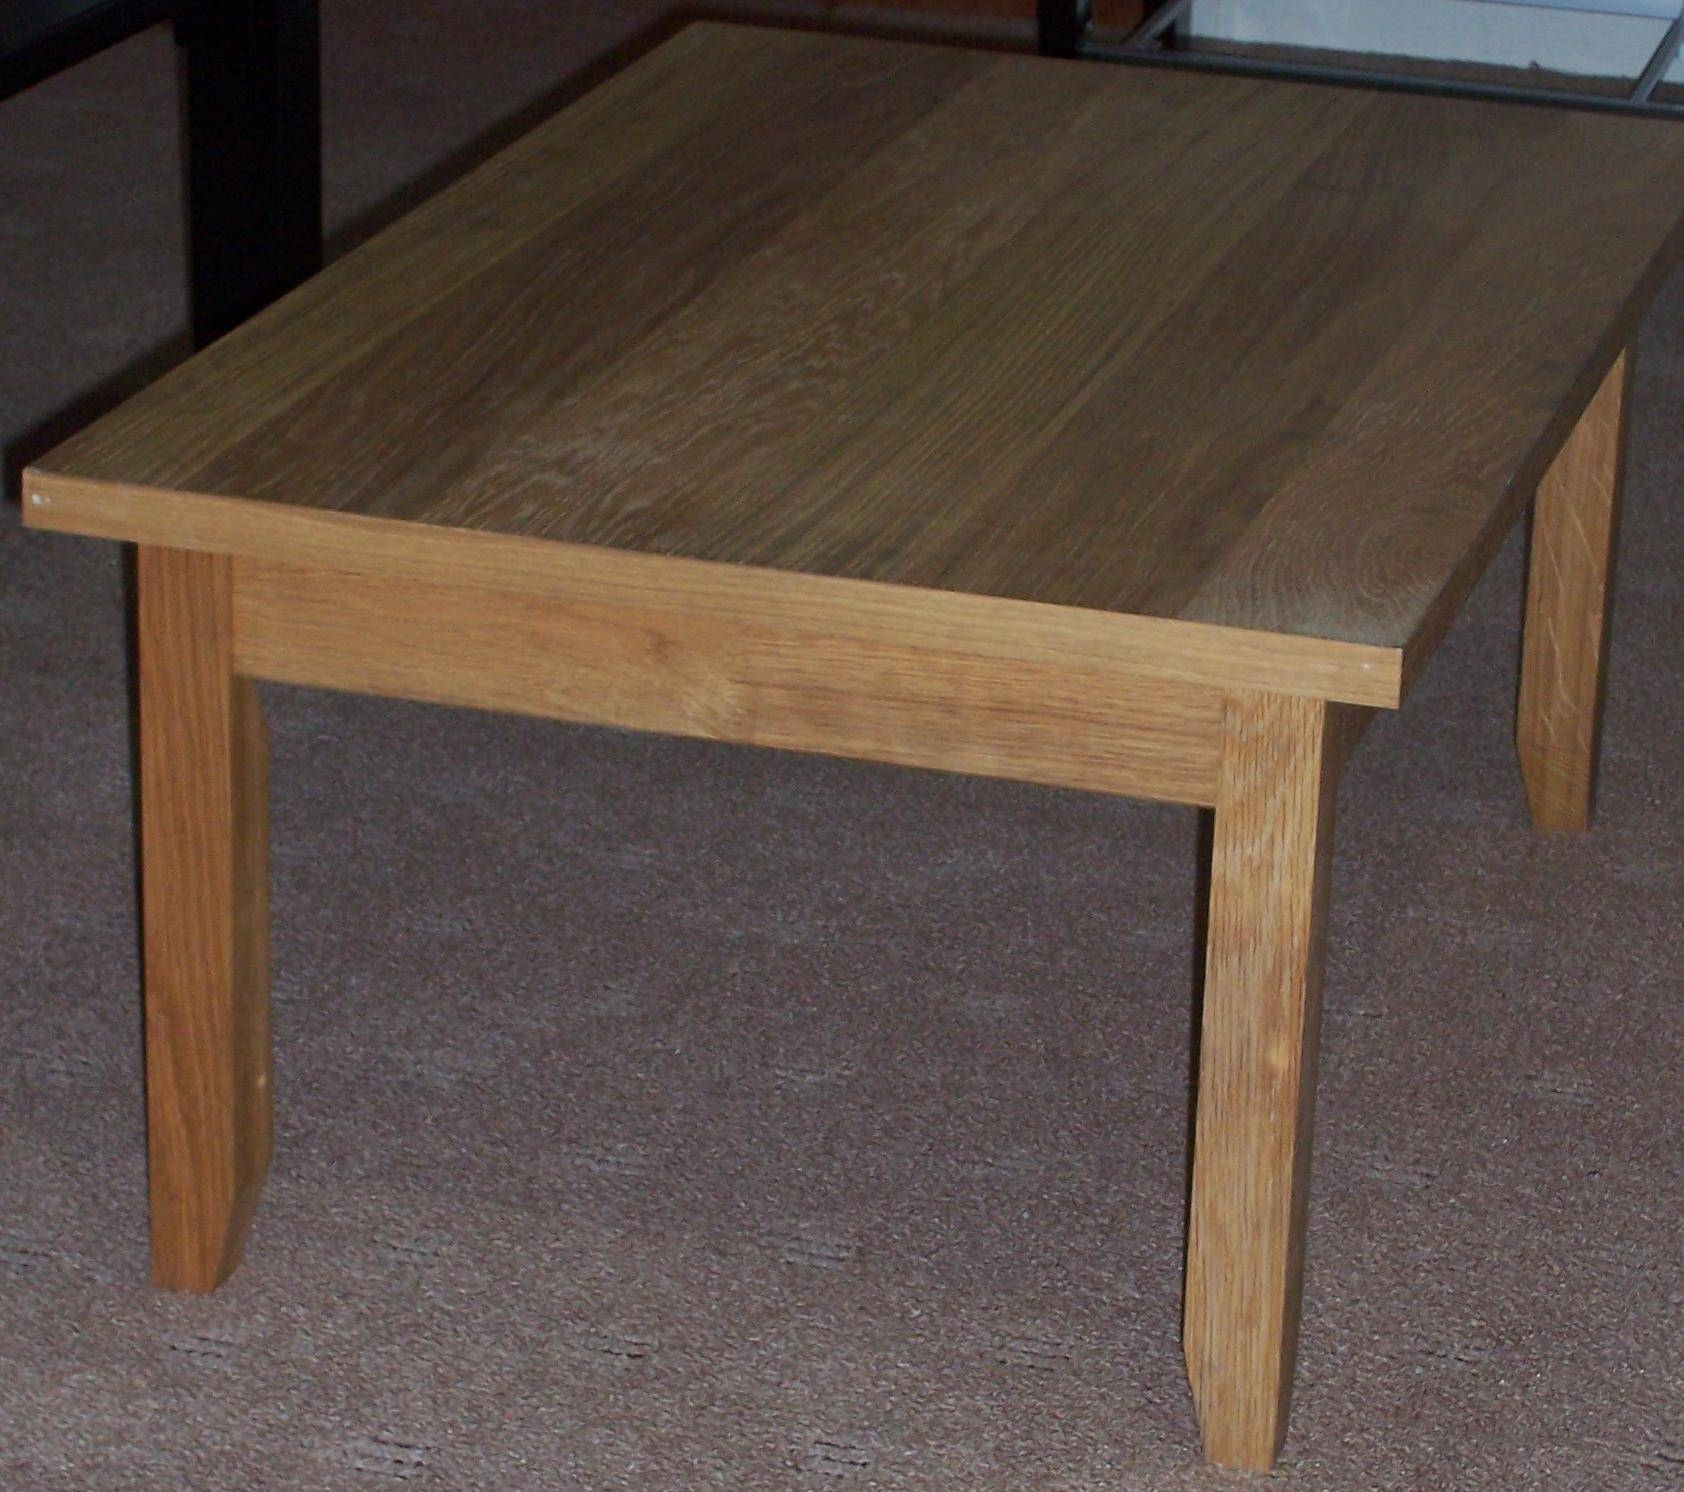 Furniture For Your Lounge, Dining And Living Room, A Liquidation pertaining to Oak Veneer Coffee Tables (Image 7 of 15)